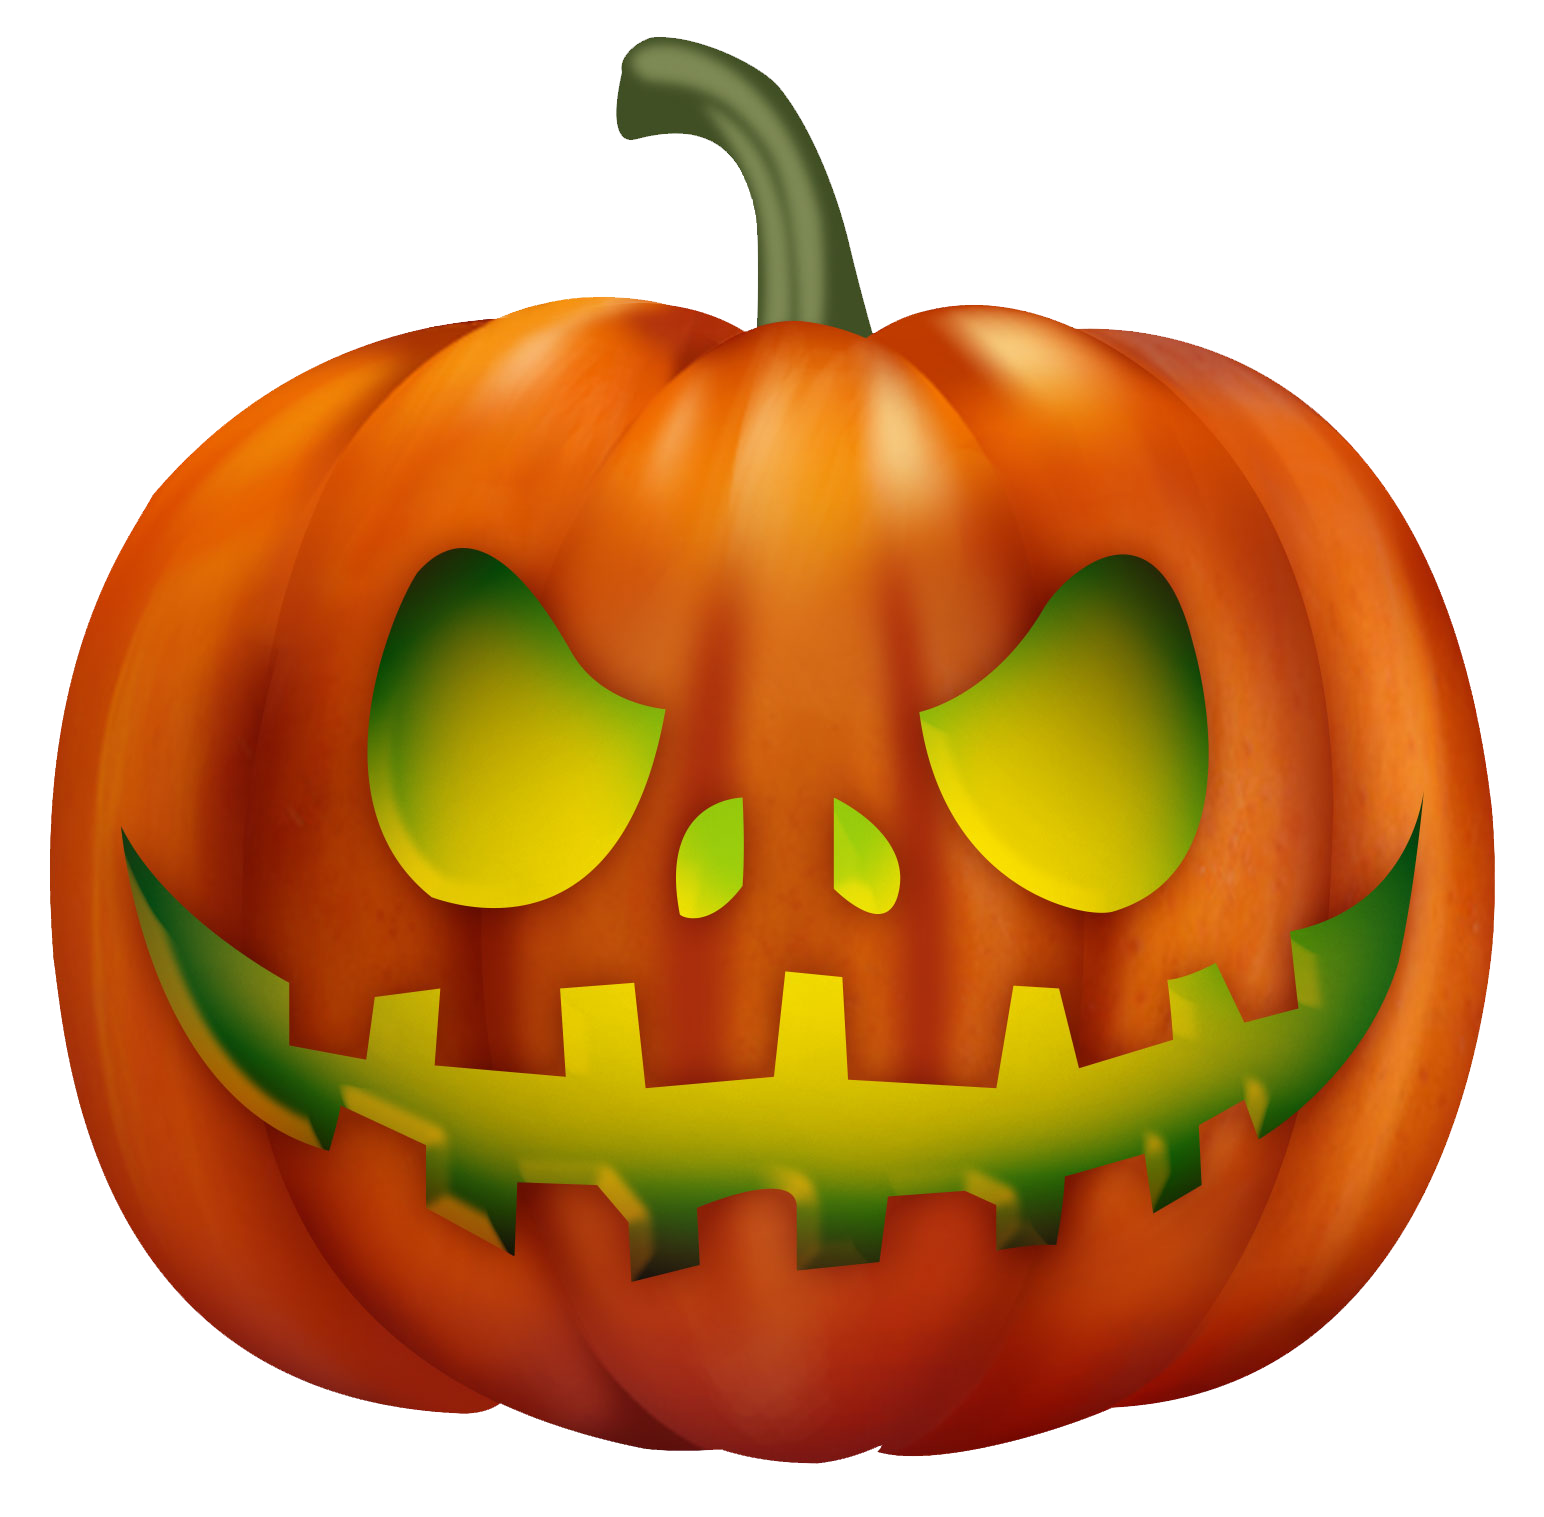 Halloween Pumpkin File PNG Image